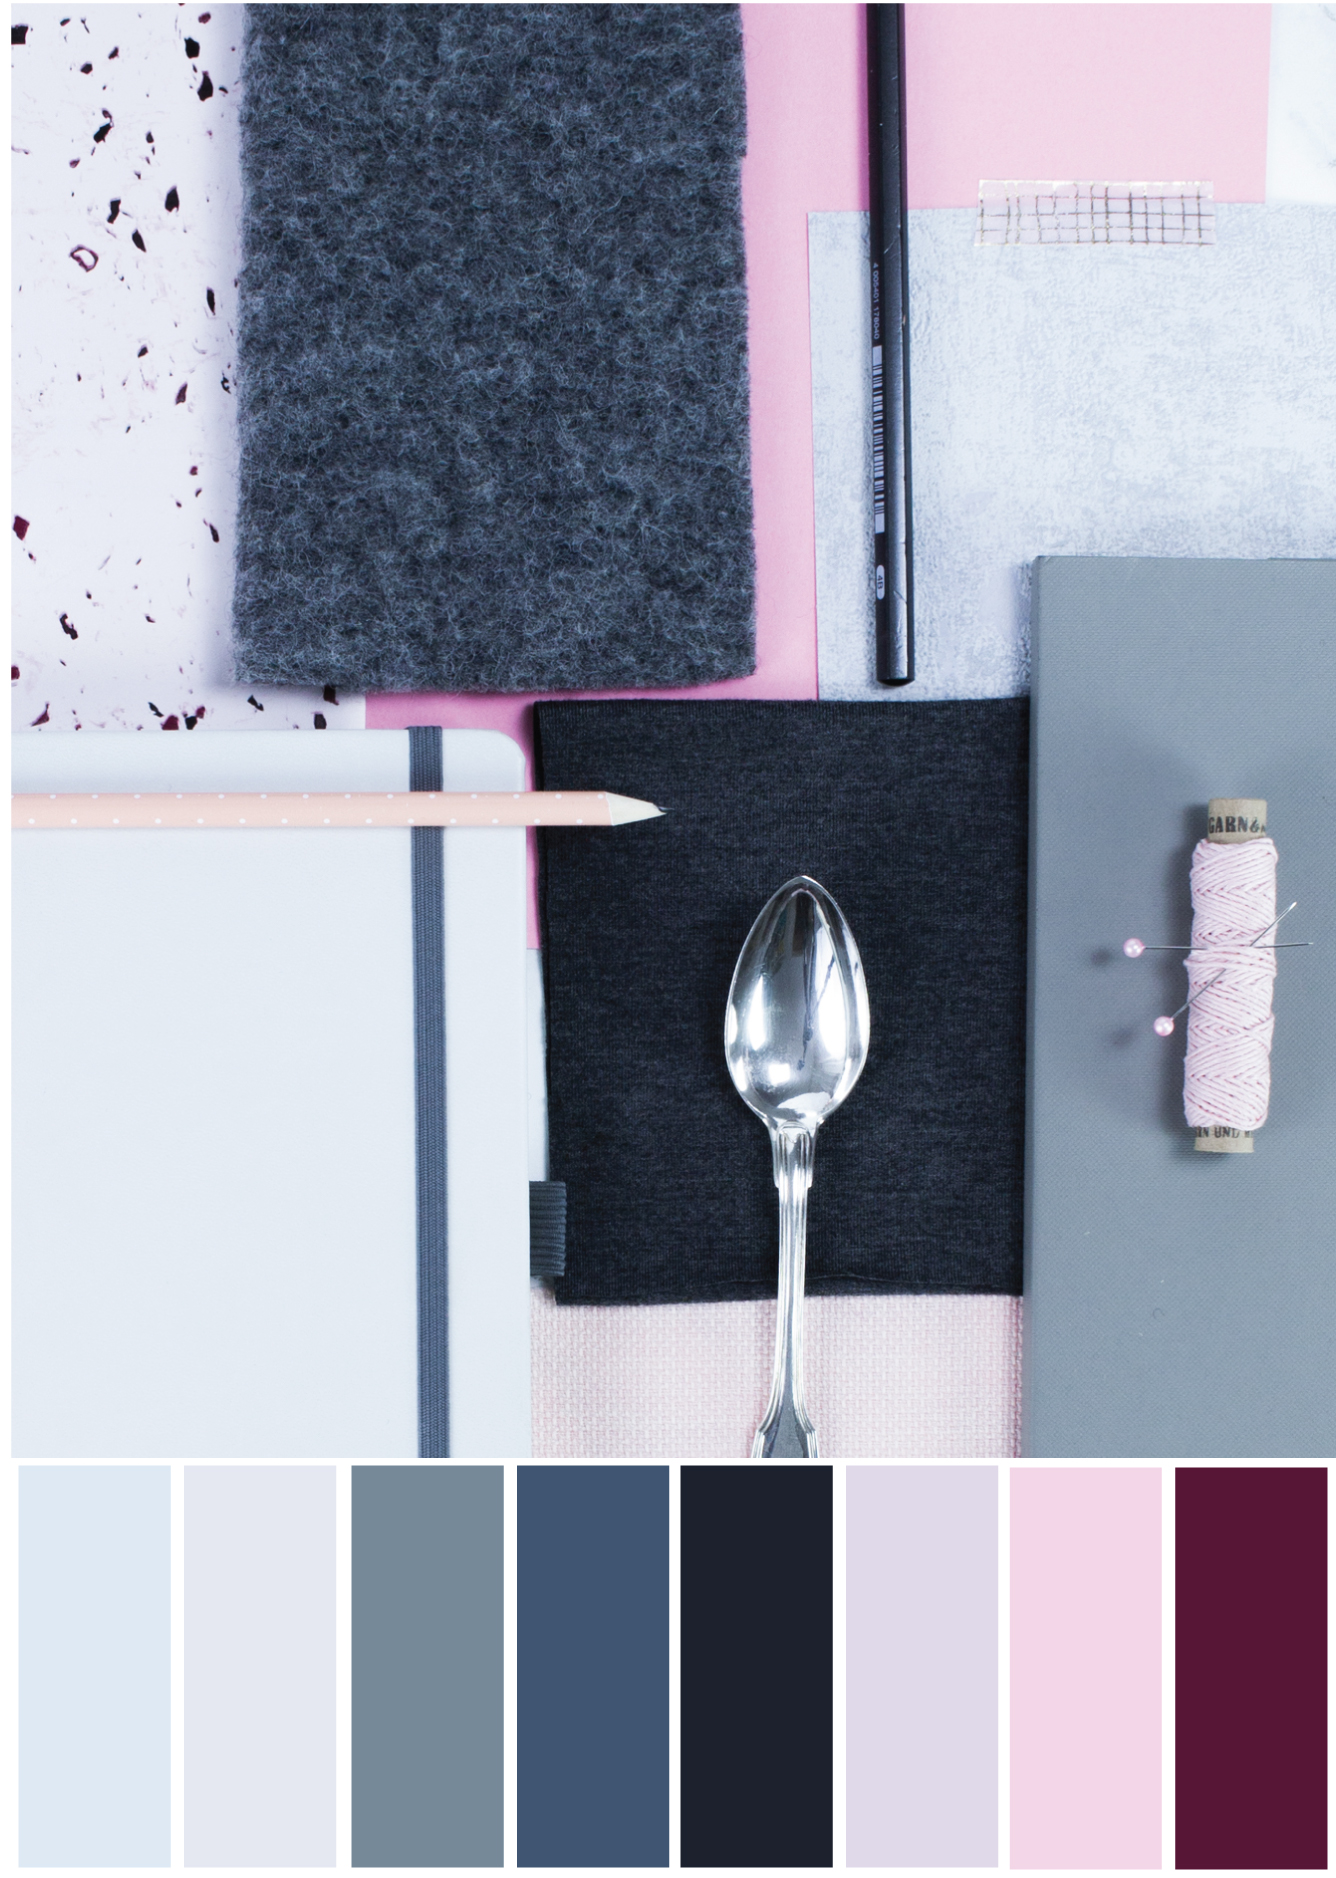 Farbpalette Grau-Rosa - Tweed & Greet